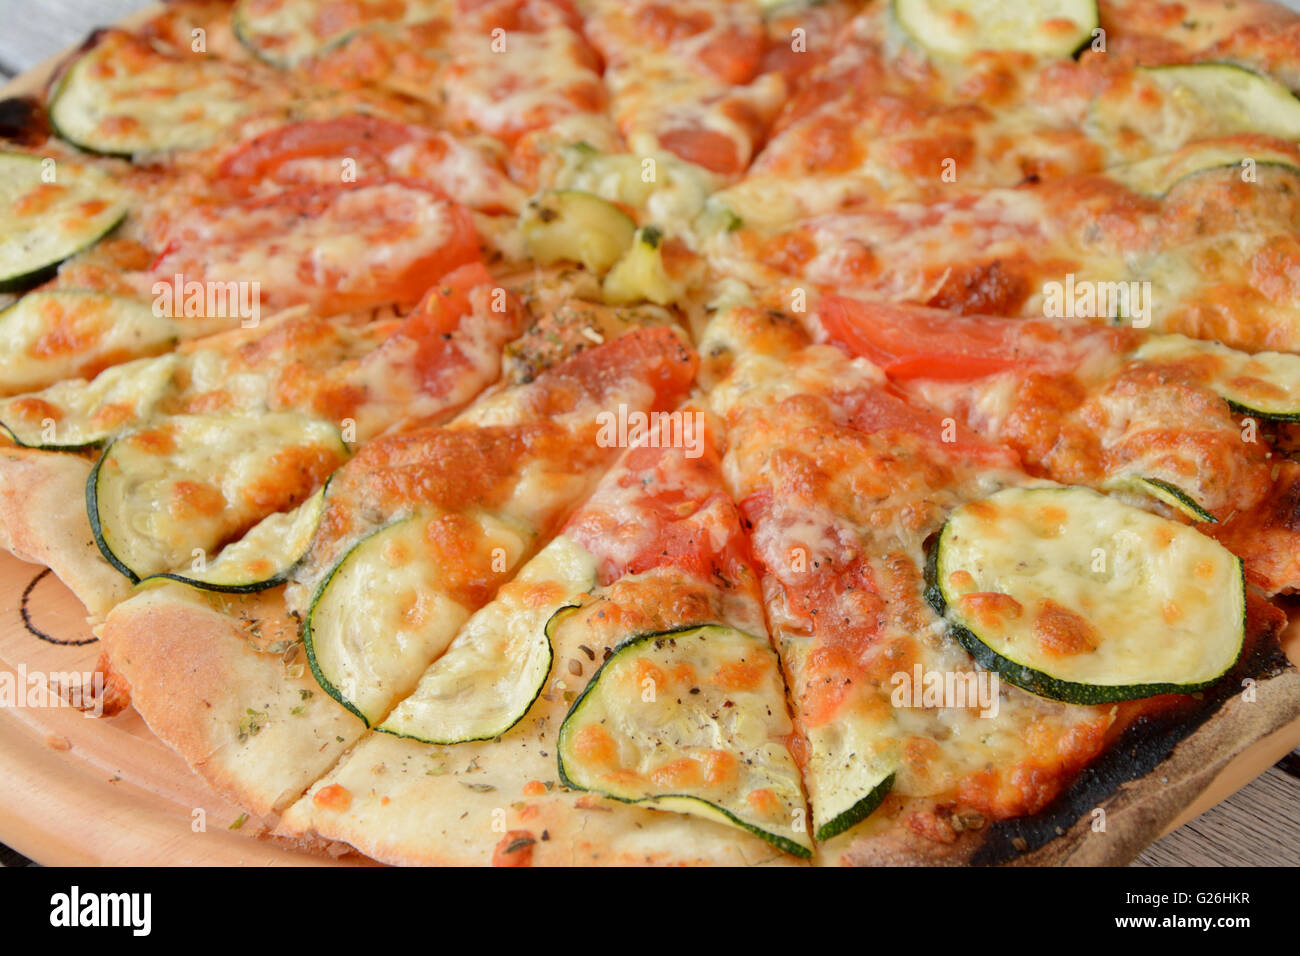 Home made pizza close up. - Stock Image